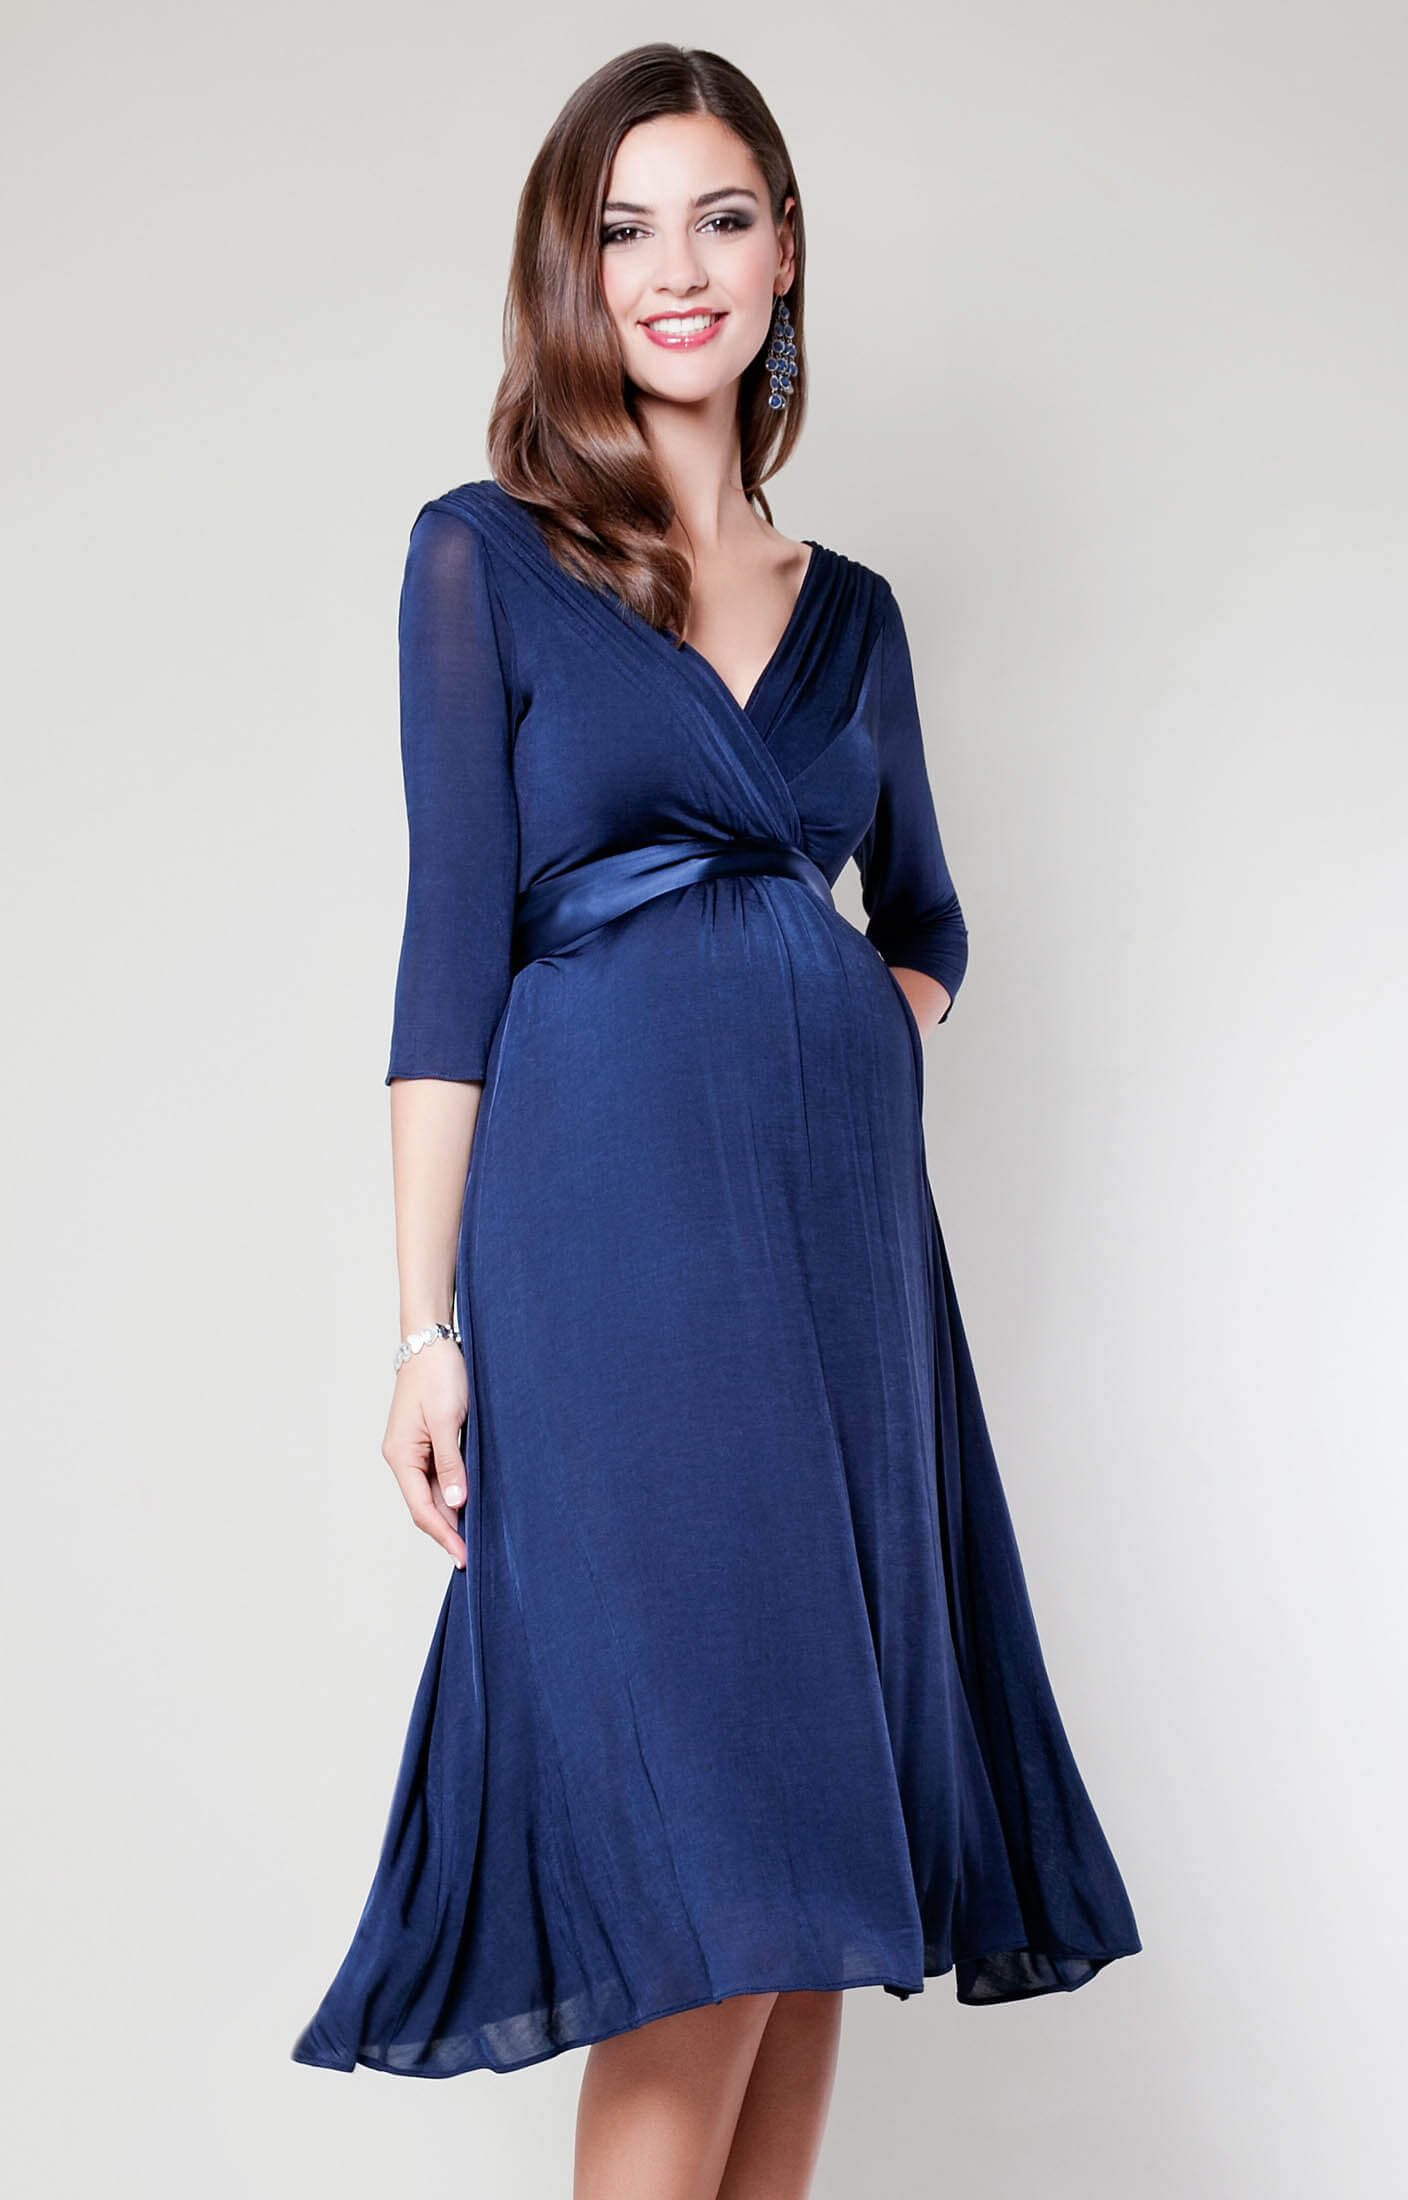 Willow maternity dress midnight blue maternity wedding for Blue dresses to wear to a wedding